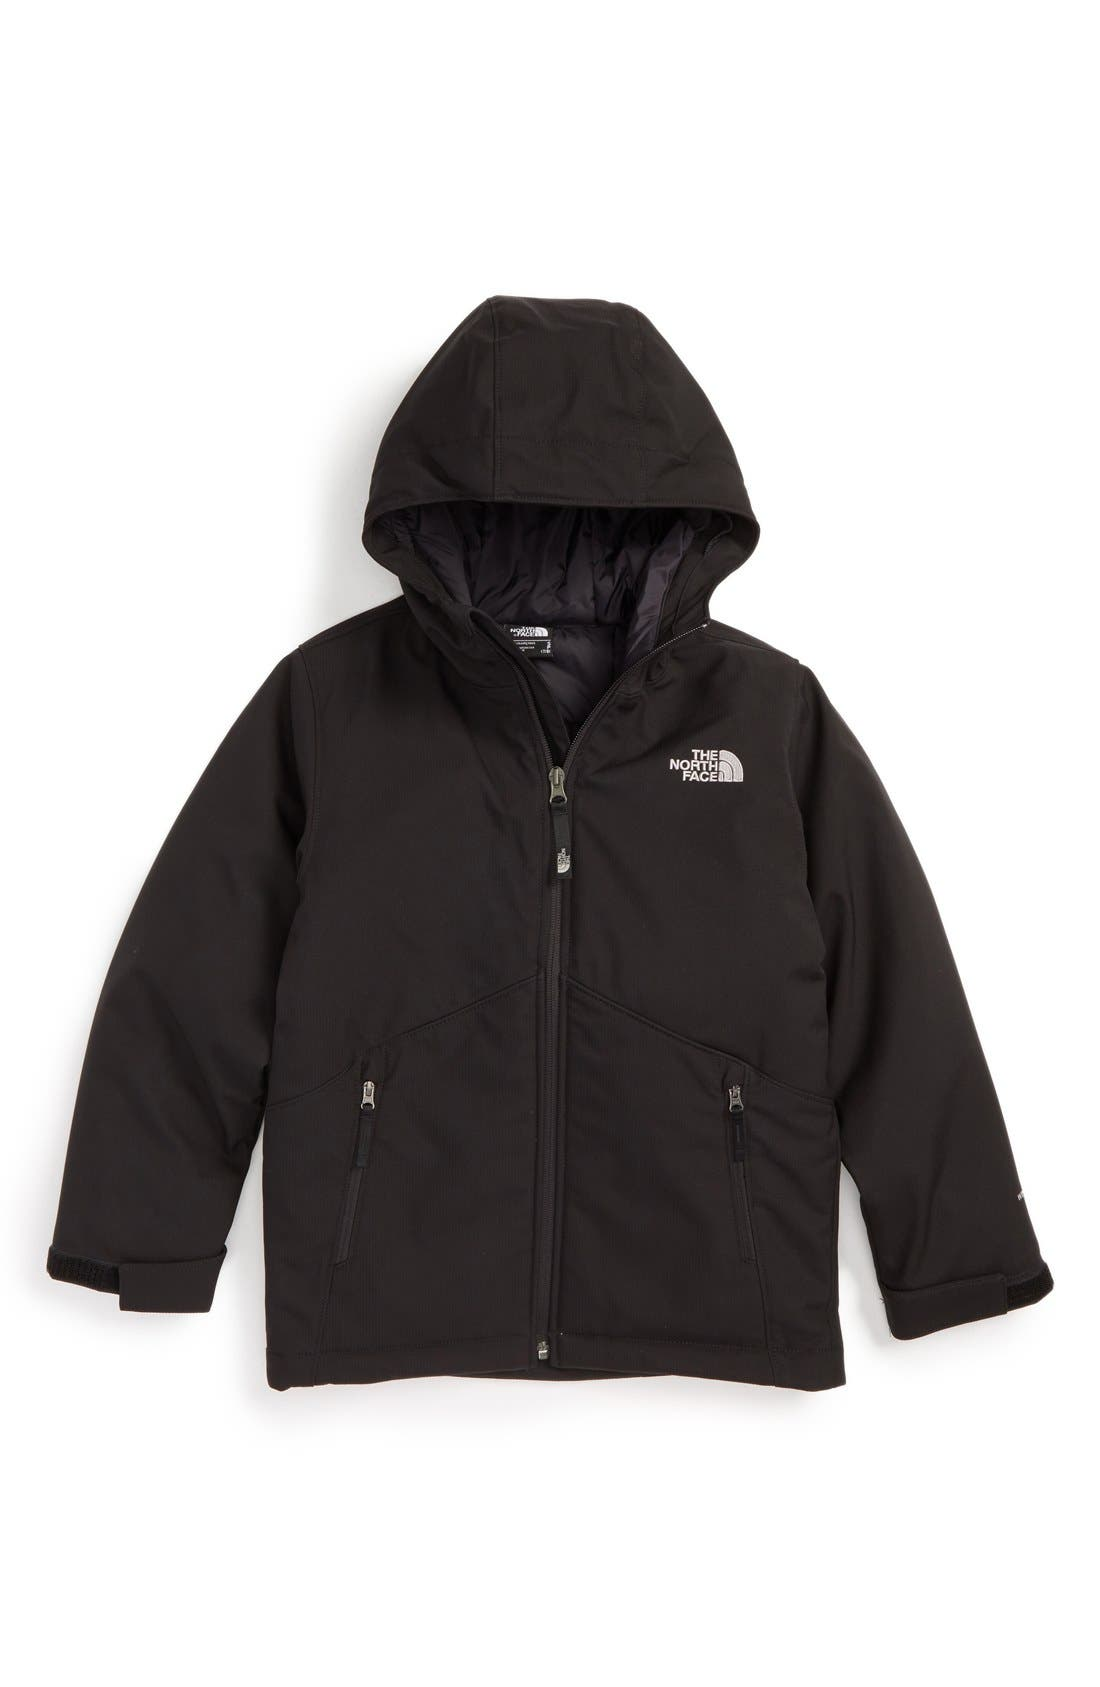 The North Face 'Apex Elevation' Hooded Jacket (Big Boys)